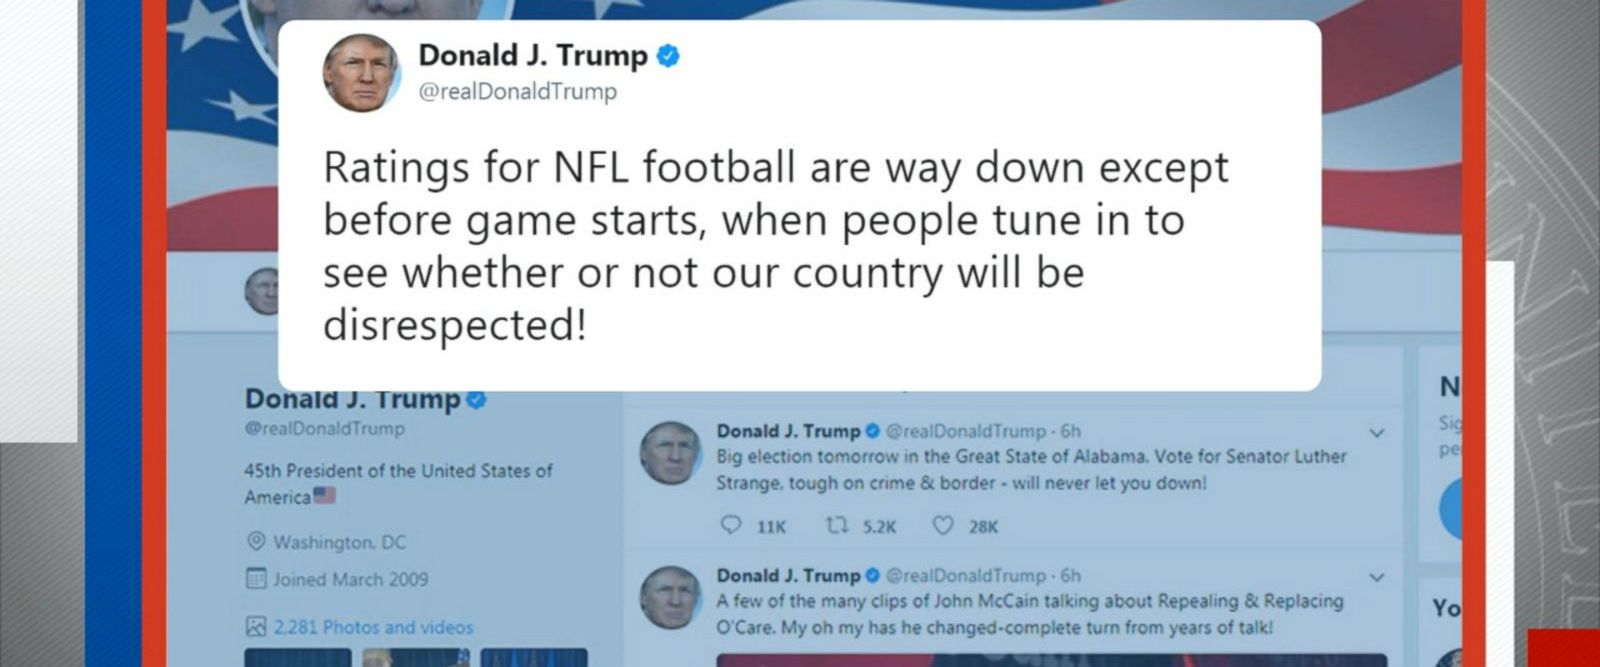 VIDEO: Trump faces backlash on Puerto Rico, NFL